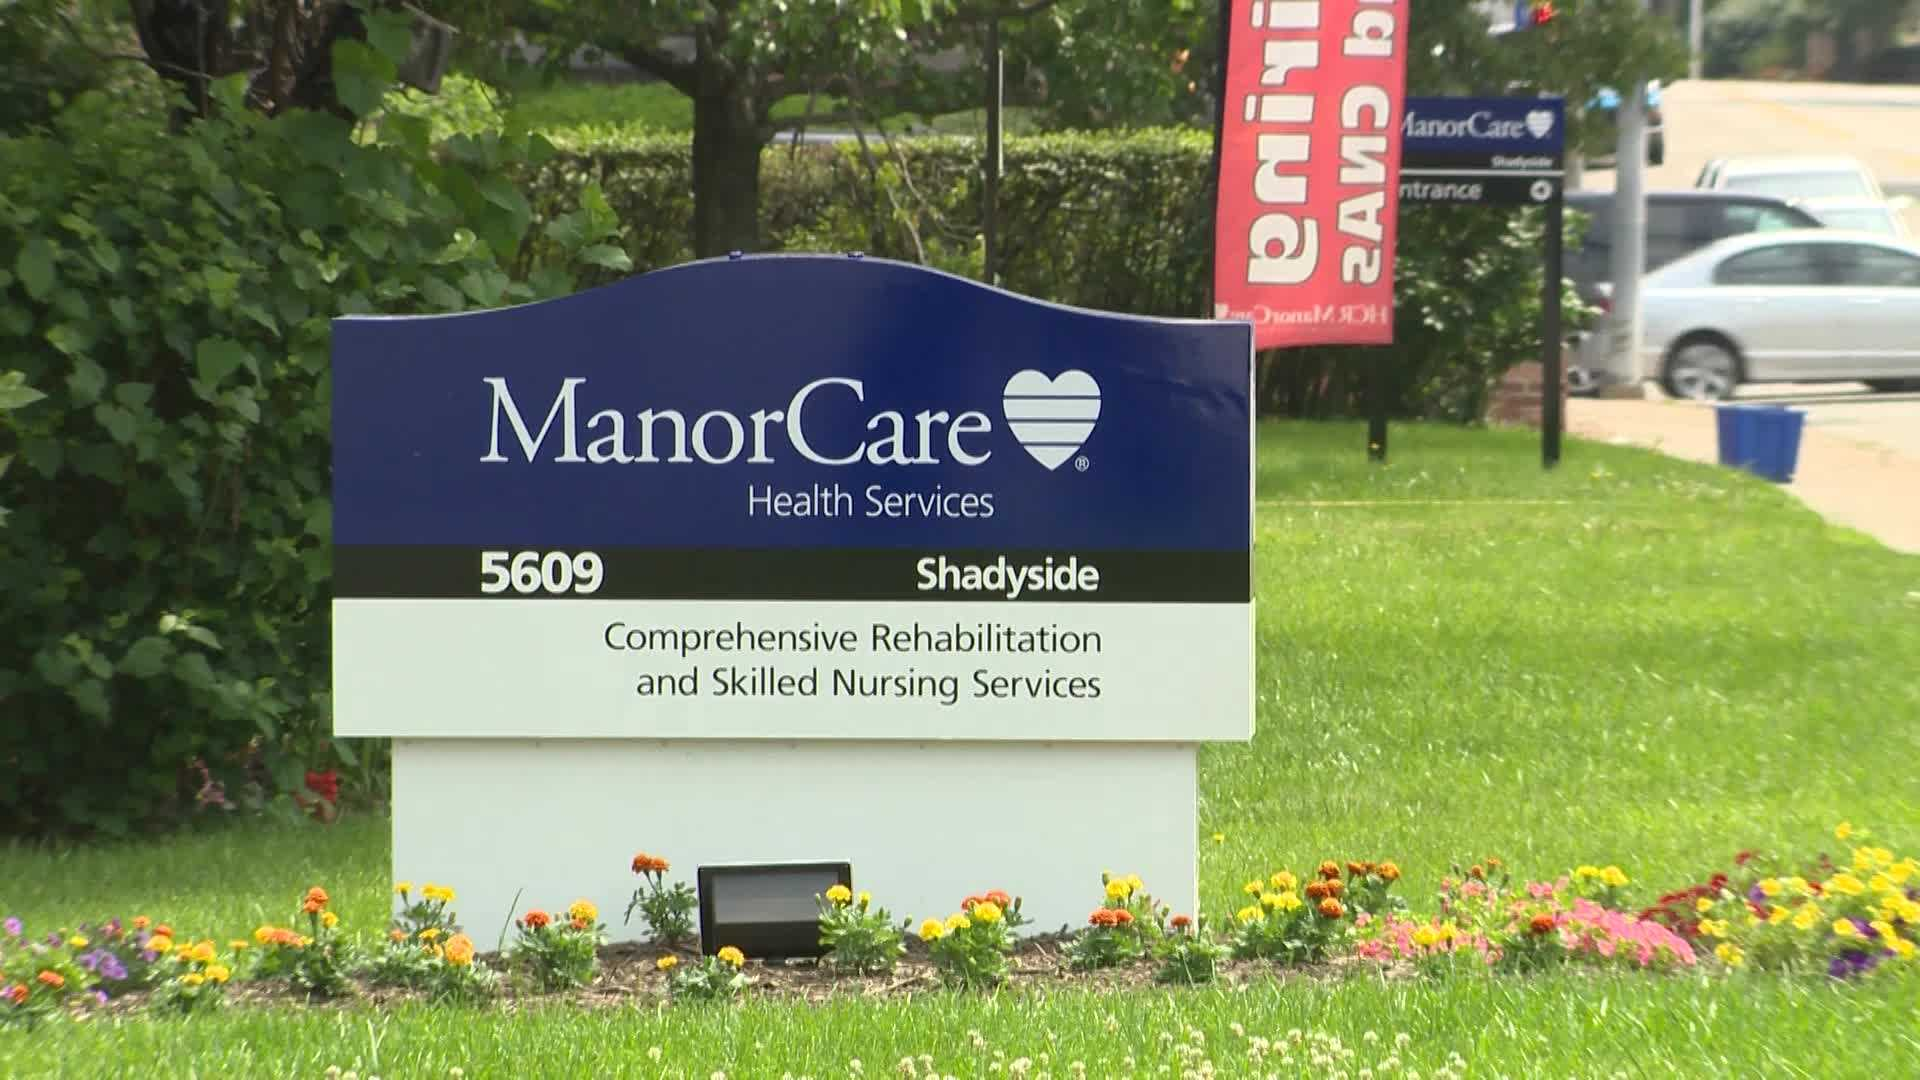 ManorCare Health Services in Shadyside